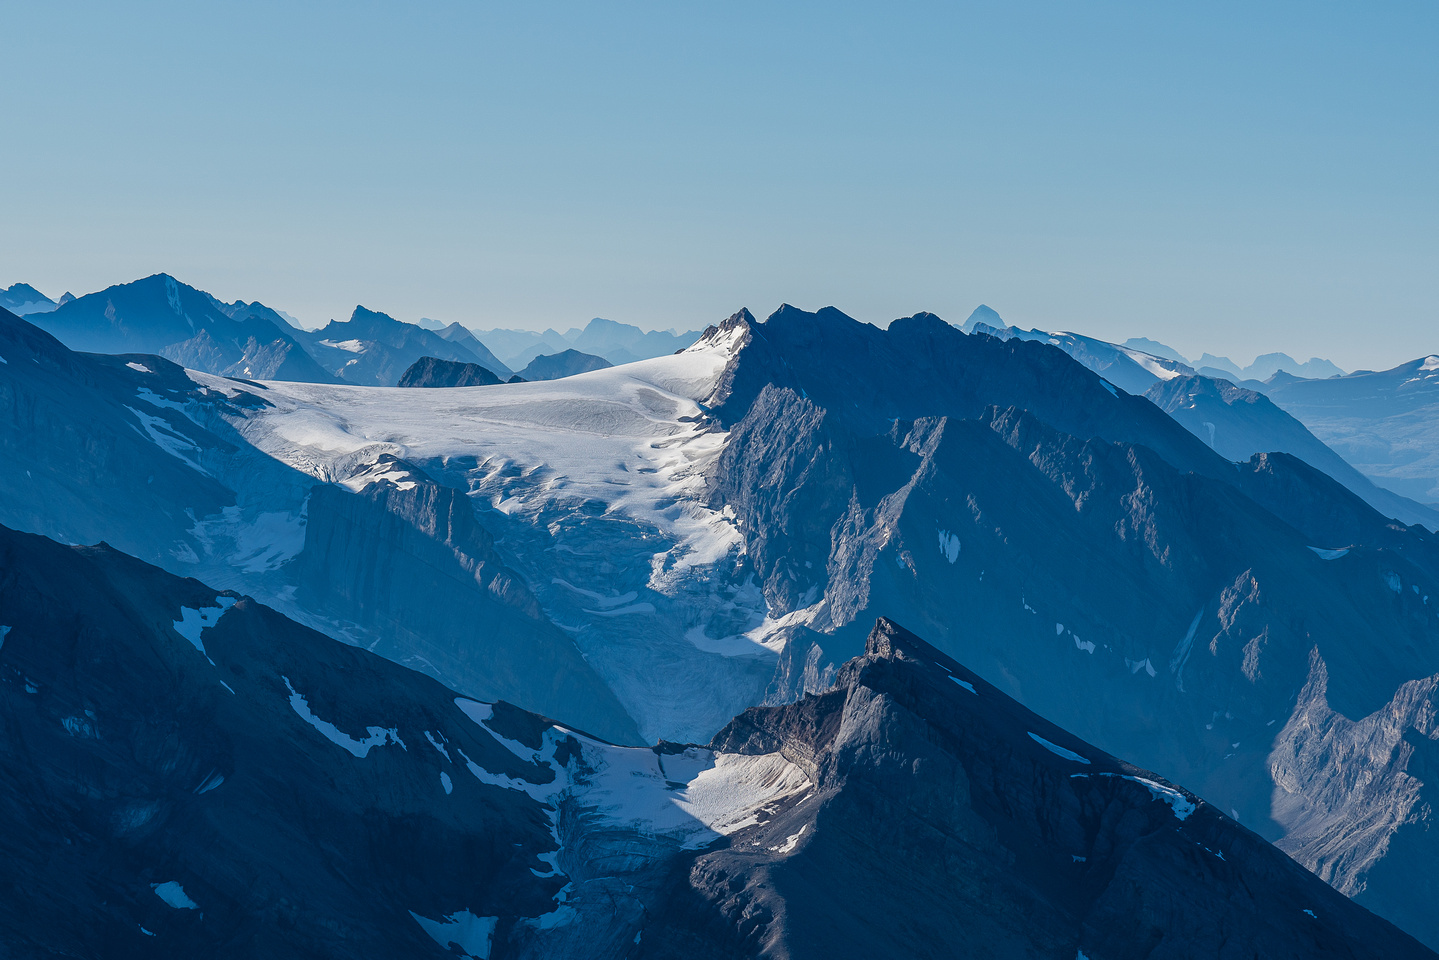 The Drummond Icefield with Cyclone and Pipestone and even Mount Assiniboine!